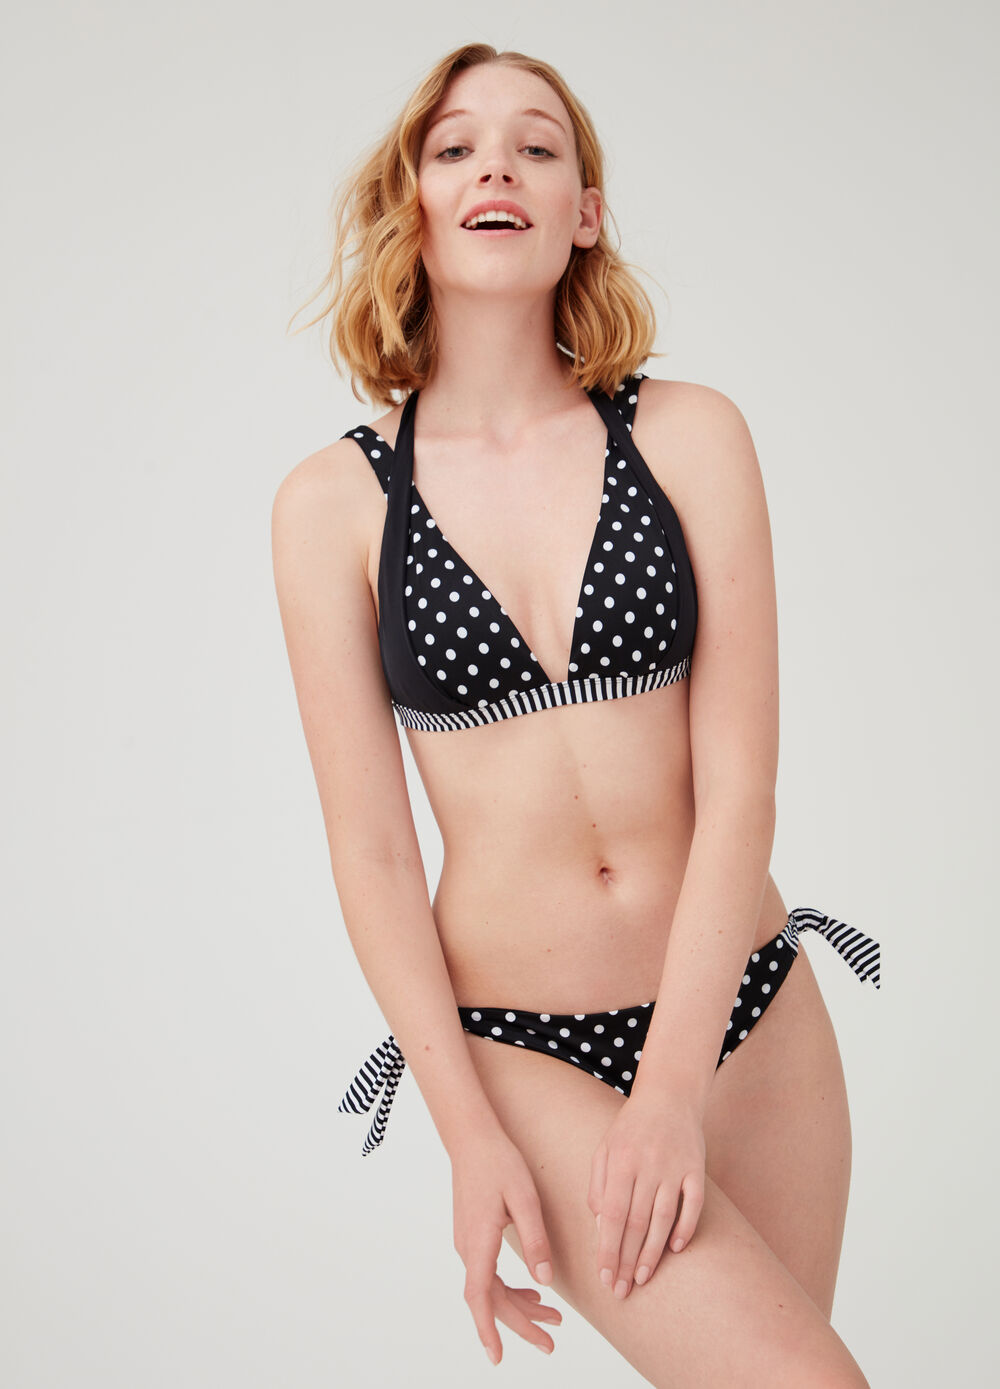 Bikini bottoms with laces, polka dots and stripes